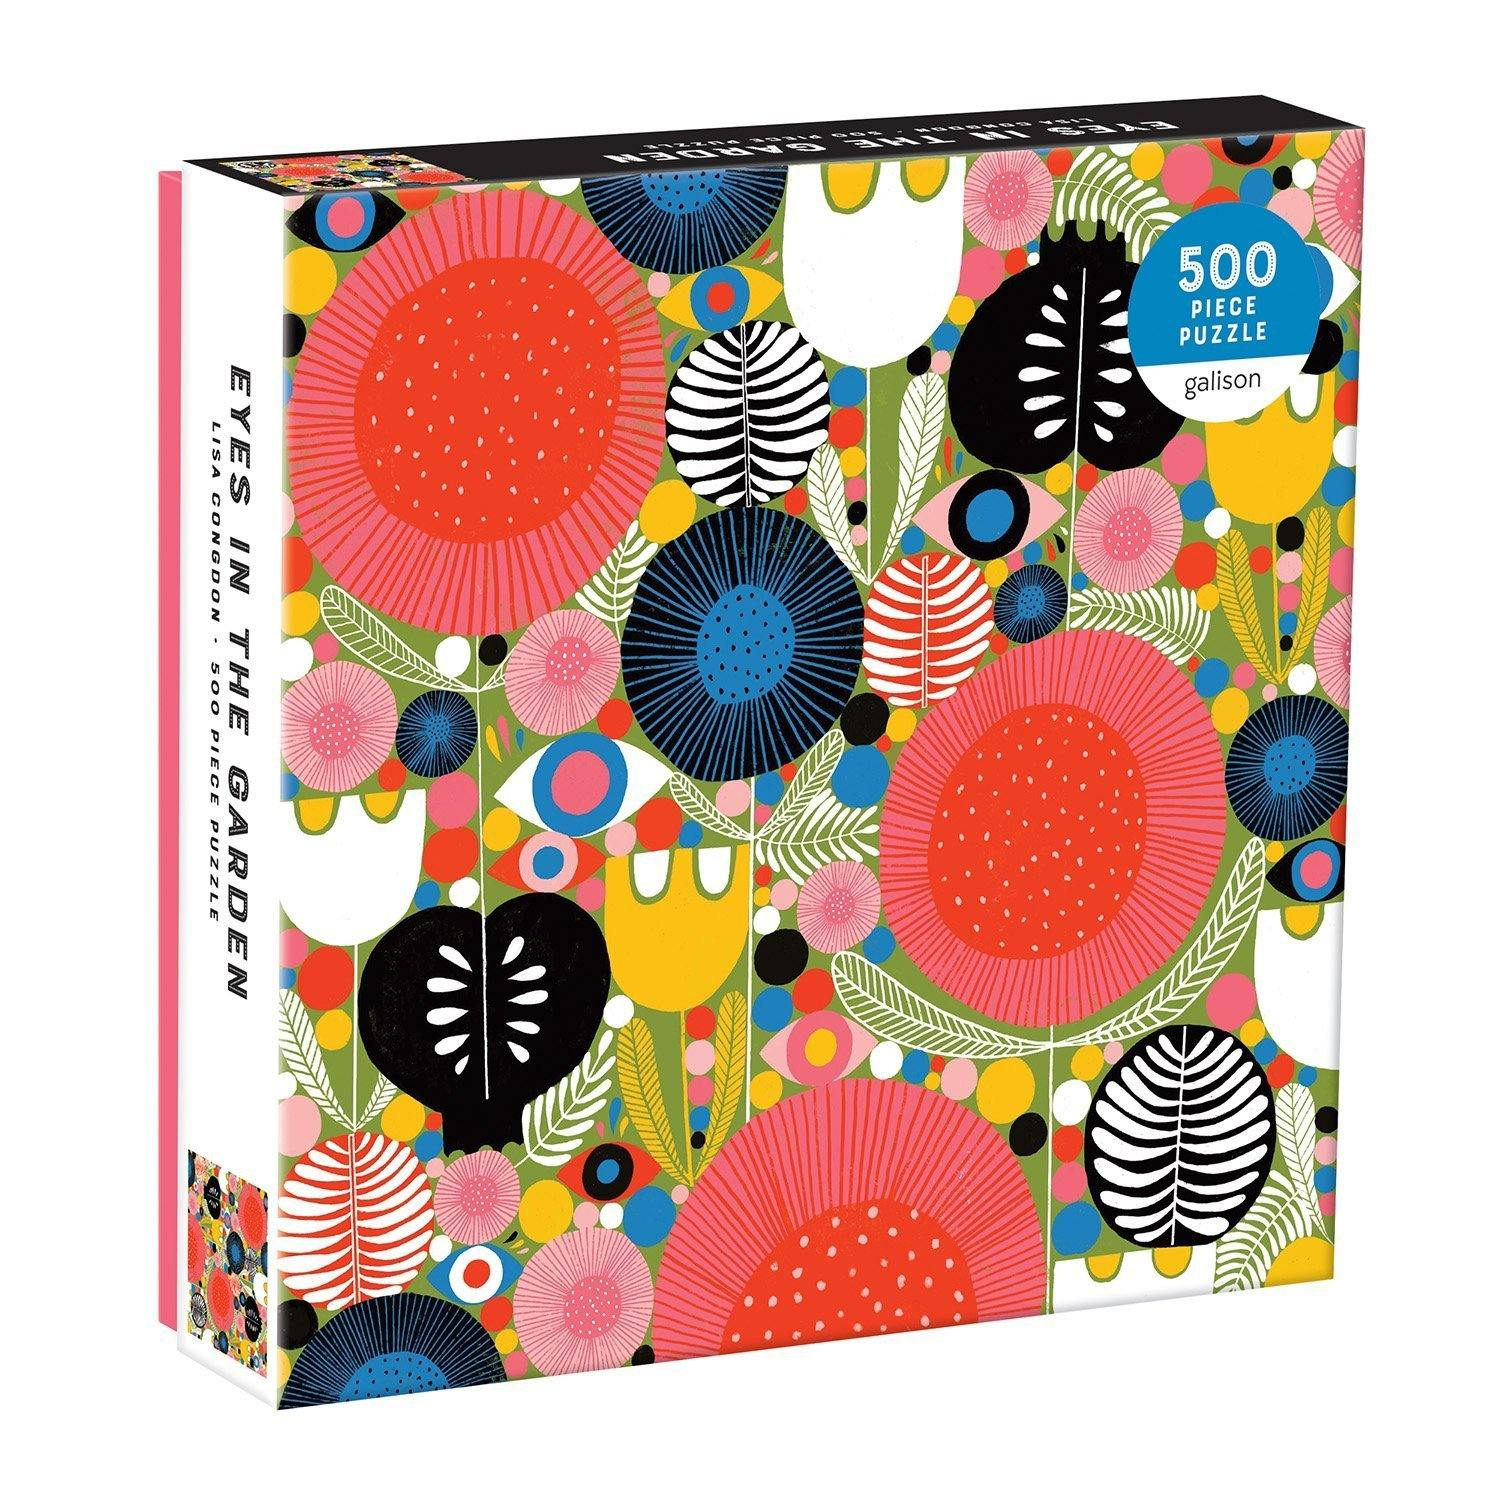 Eyes In The Garden 500 Piece Jigsaw Puzzle, Toys & Games by Insideout